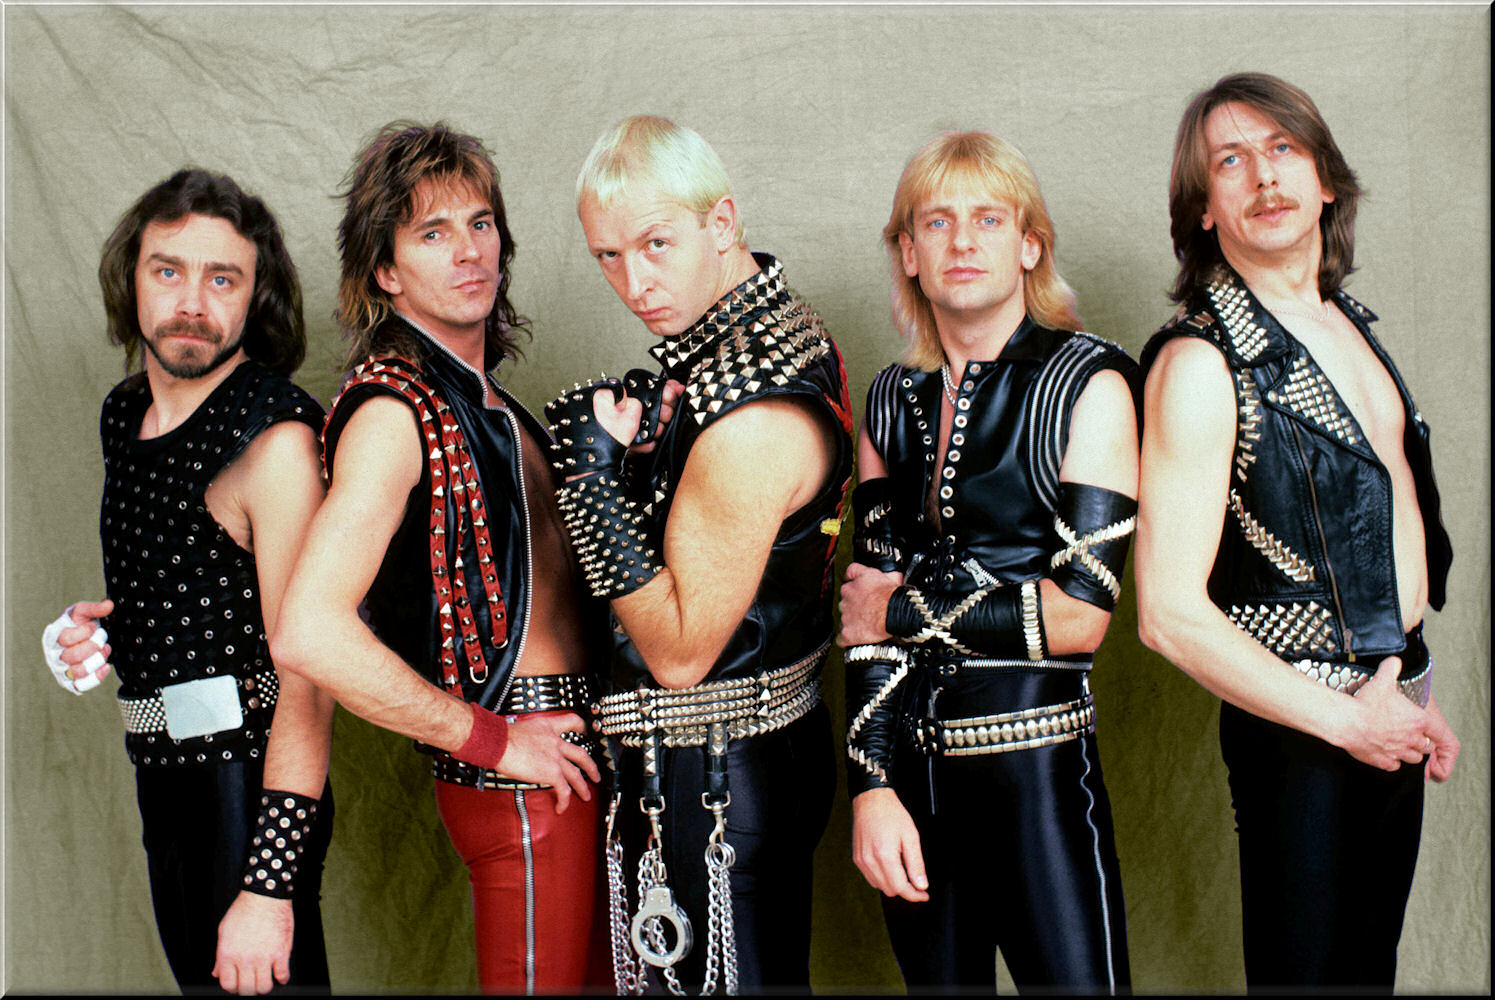 judas-priest-1984-columbia-records-ghostcultmag.jpg